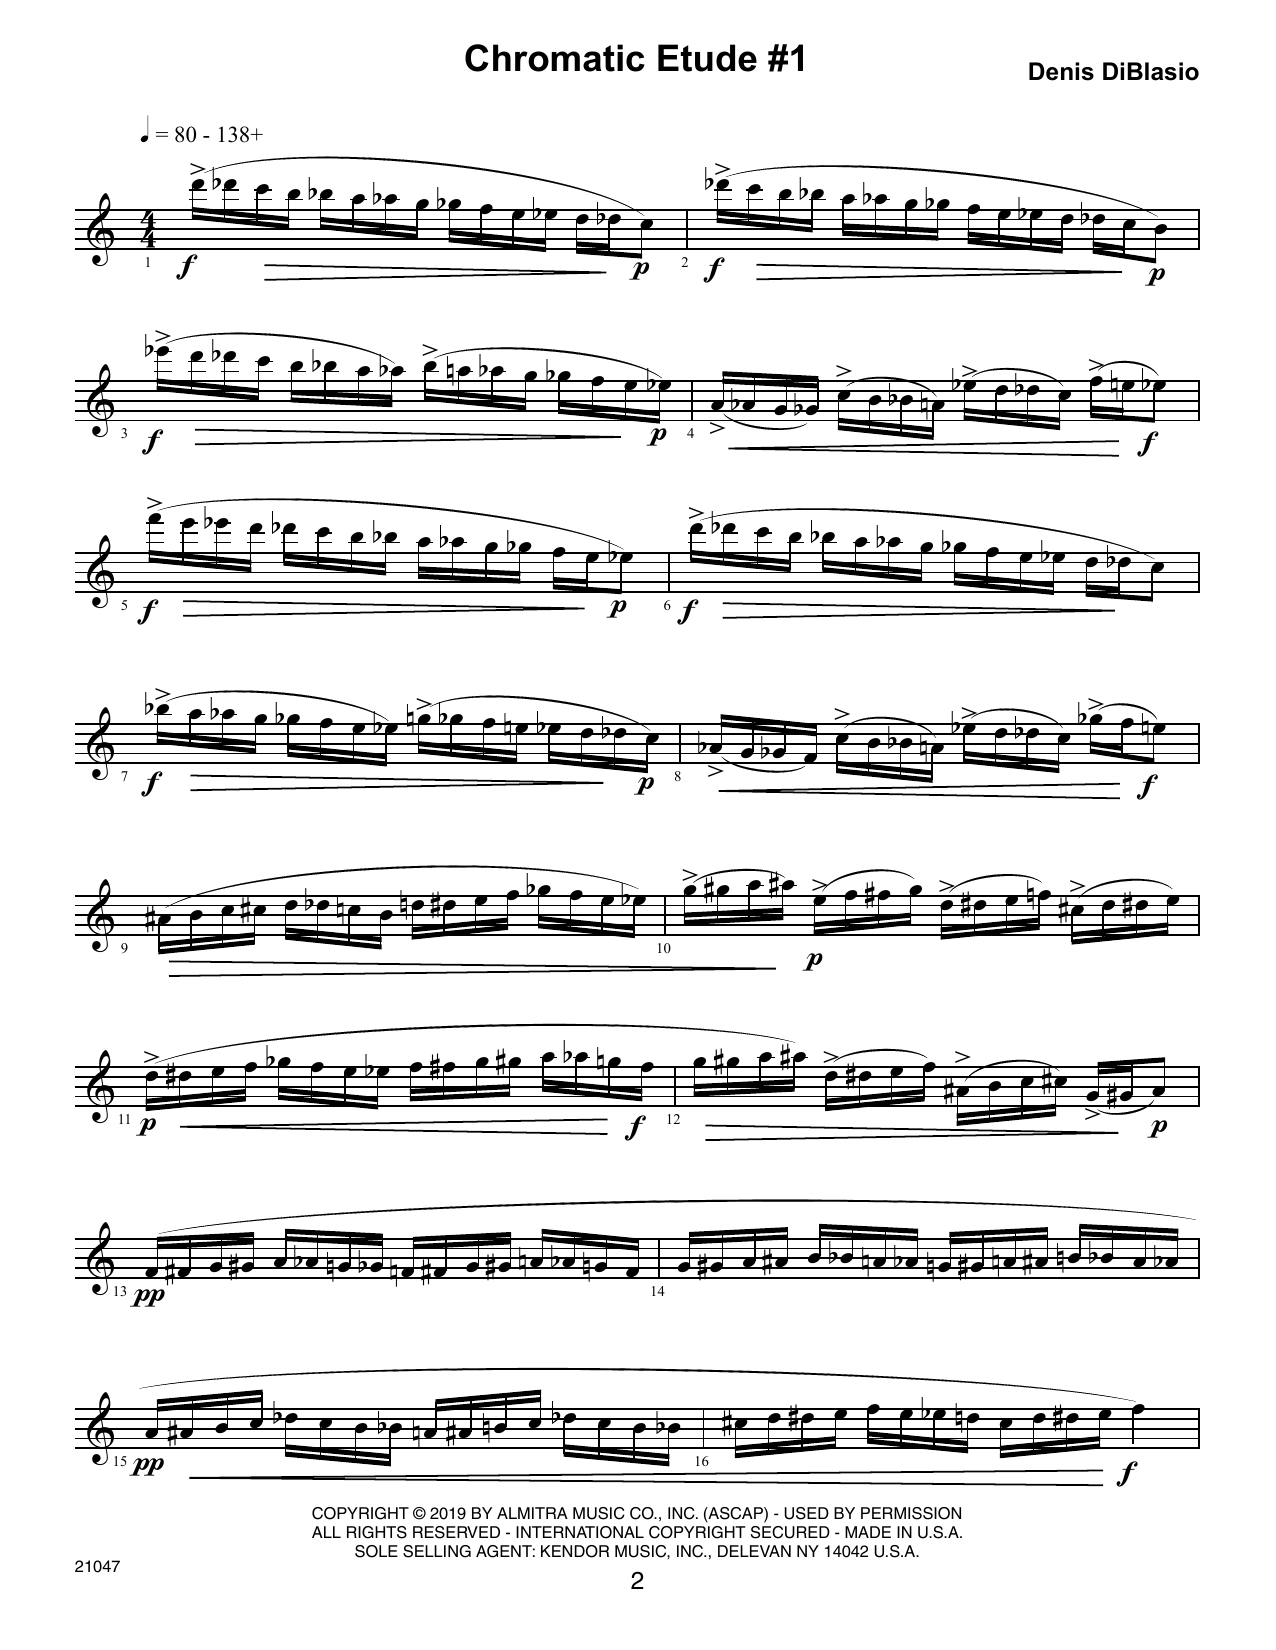 Denis DiBlasio Chromatic Etudes And Sound Patterns For Saxophone sheet music notes and chords. Download Printable PDF.